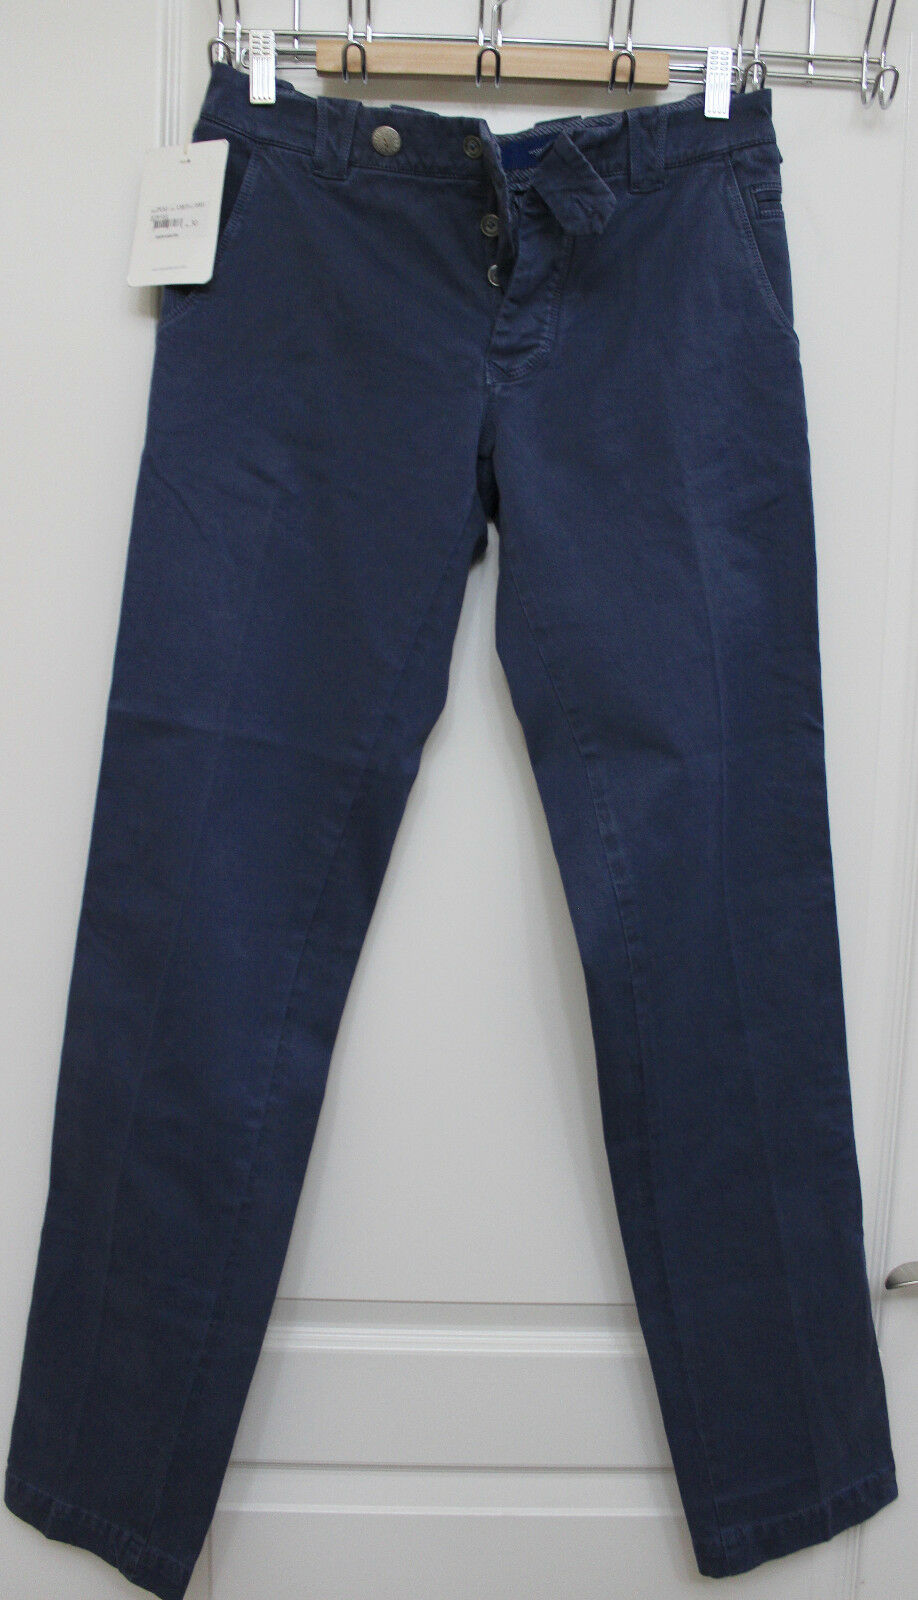 Mastai Ferretti men dark bluee cotton stretch casual pants size 30 X 34.5